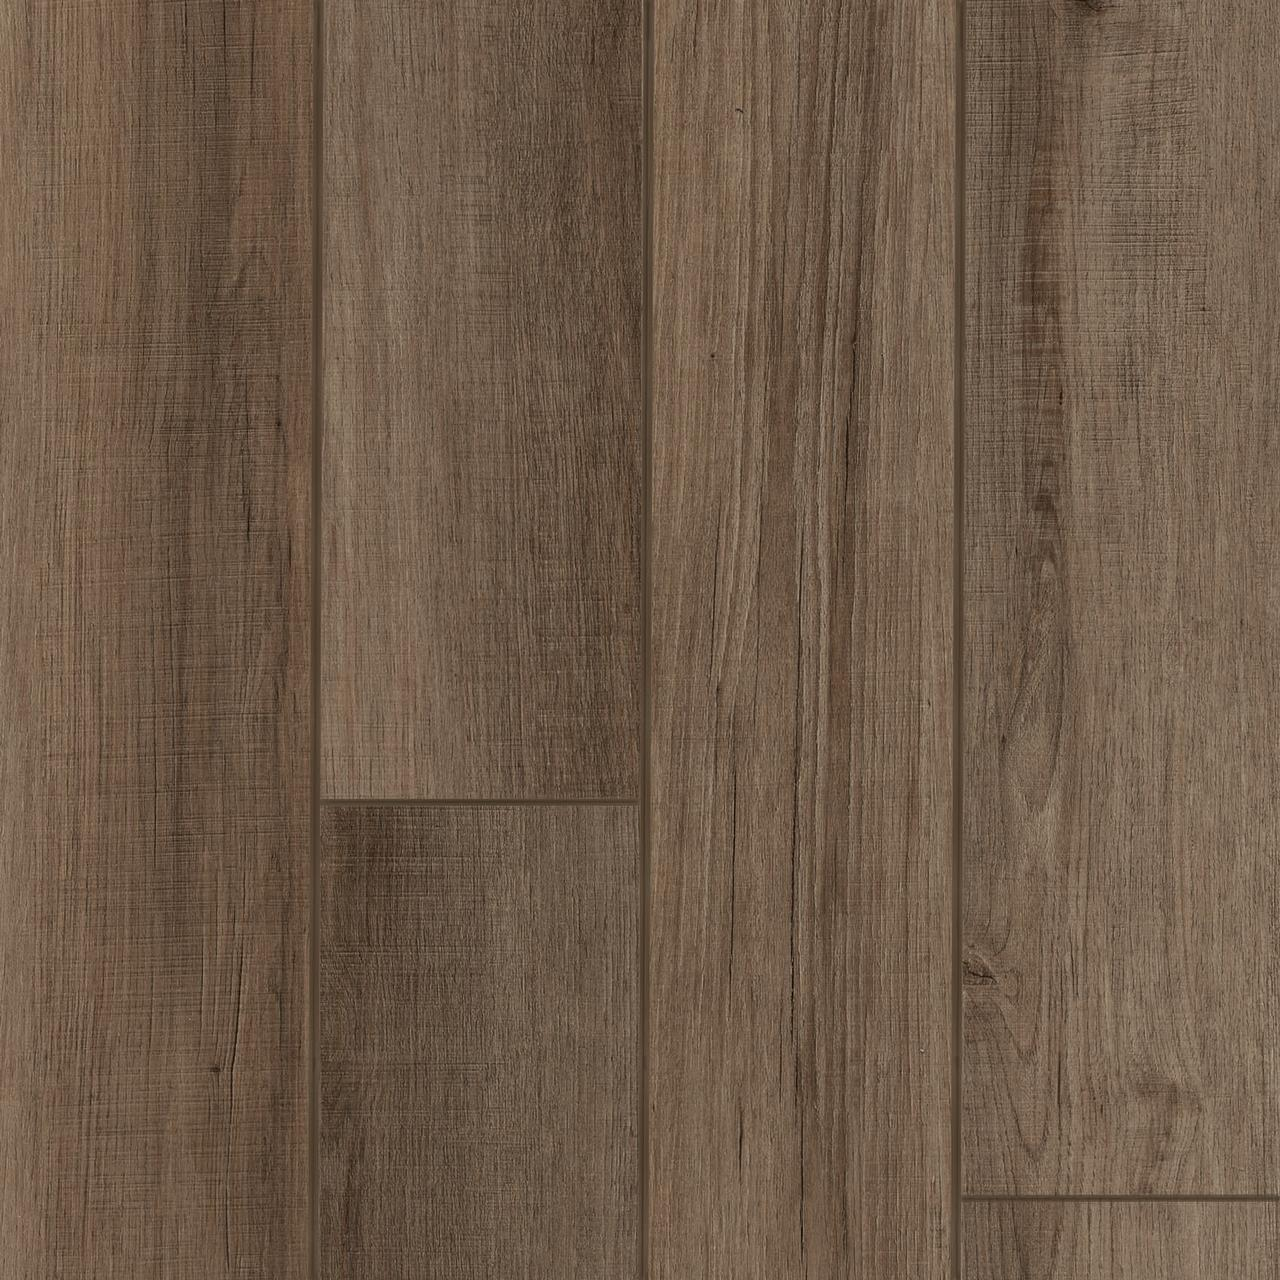 armstrong flooring luxury vinyl plank rigid core essentials locking 5 67 x47 76 wolf point hickory fallen leaves 18 8 sq ft